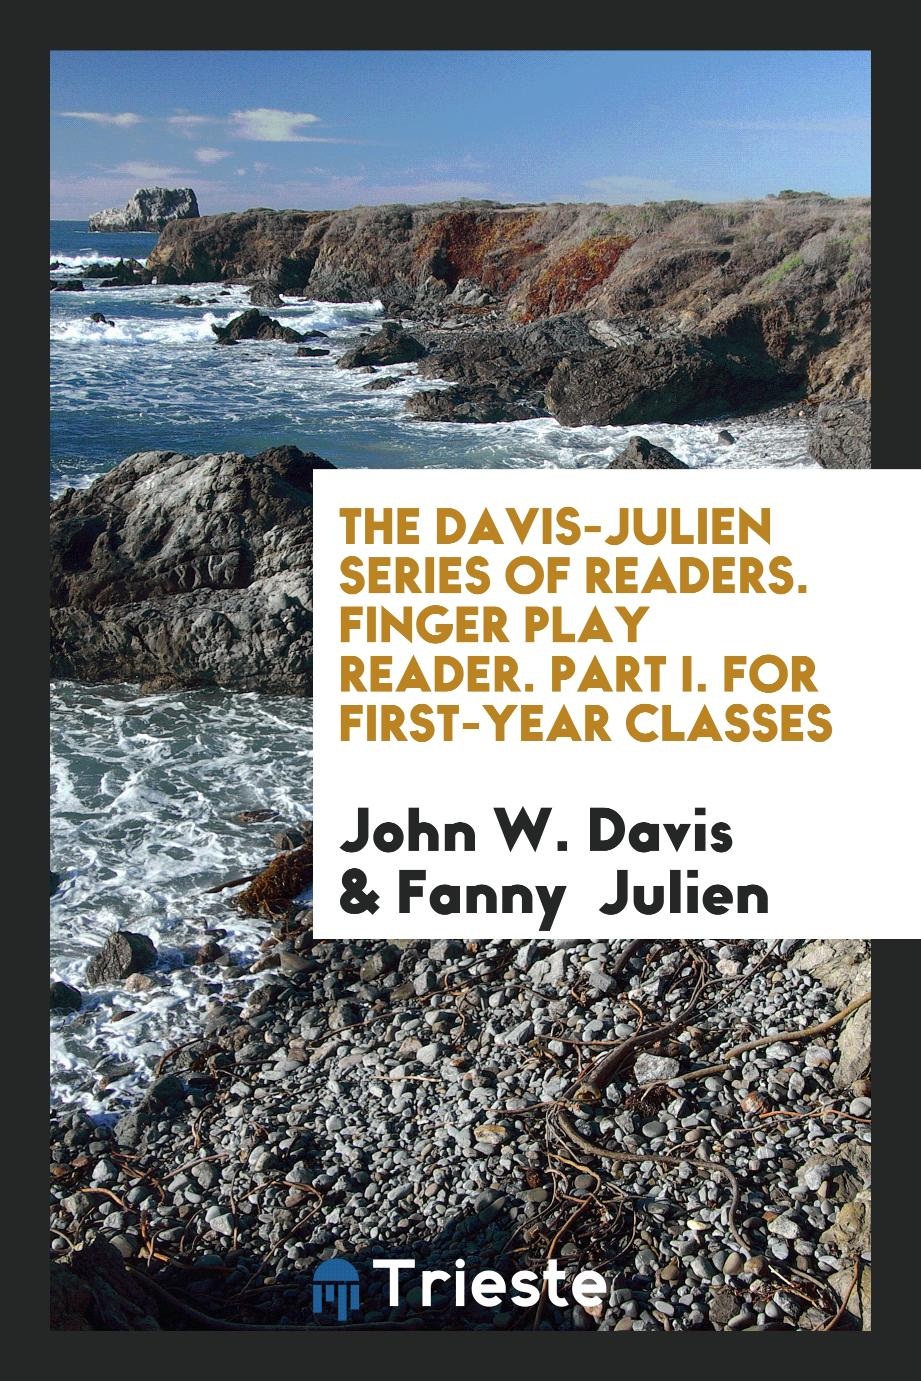 The Davis-Julien Series of Readers. Finger Play Reader. Part I. For First-Year Classes